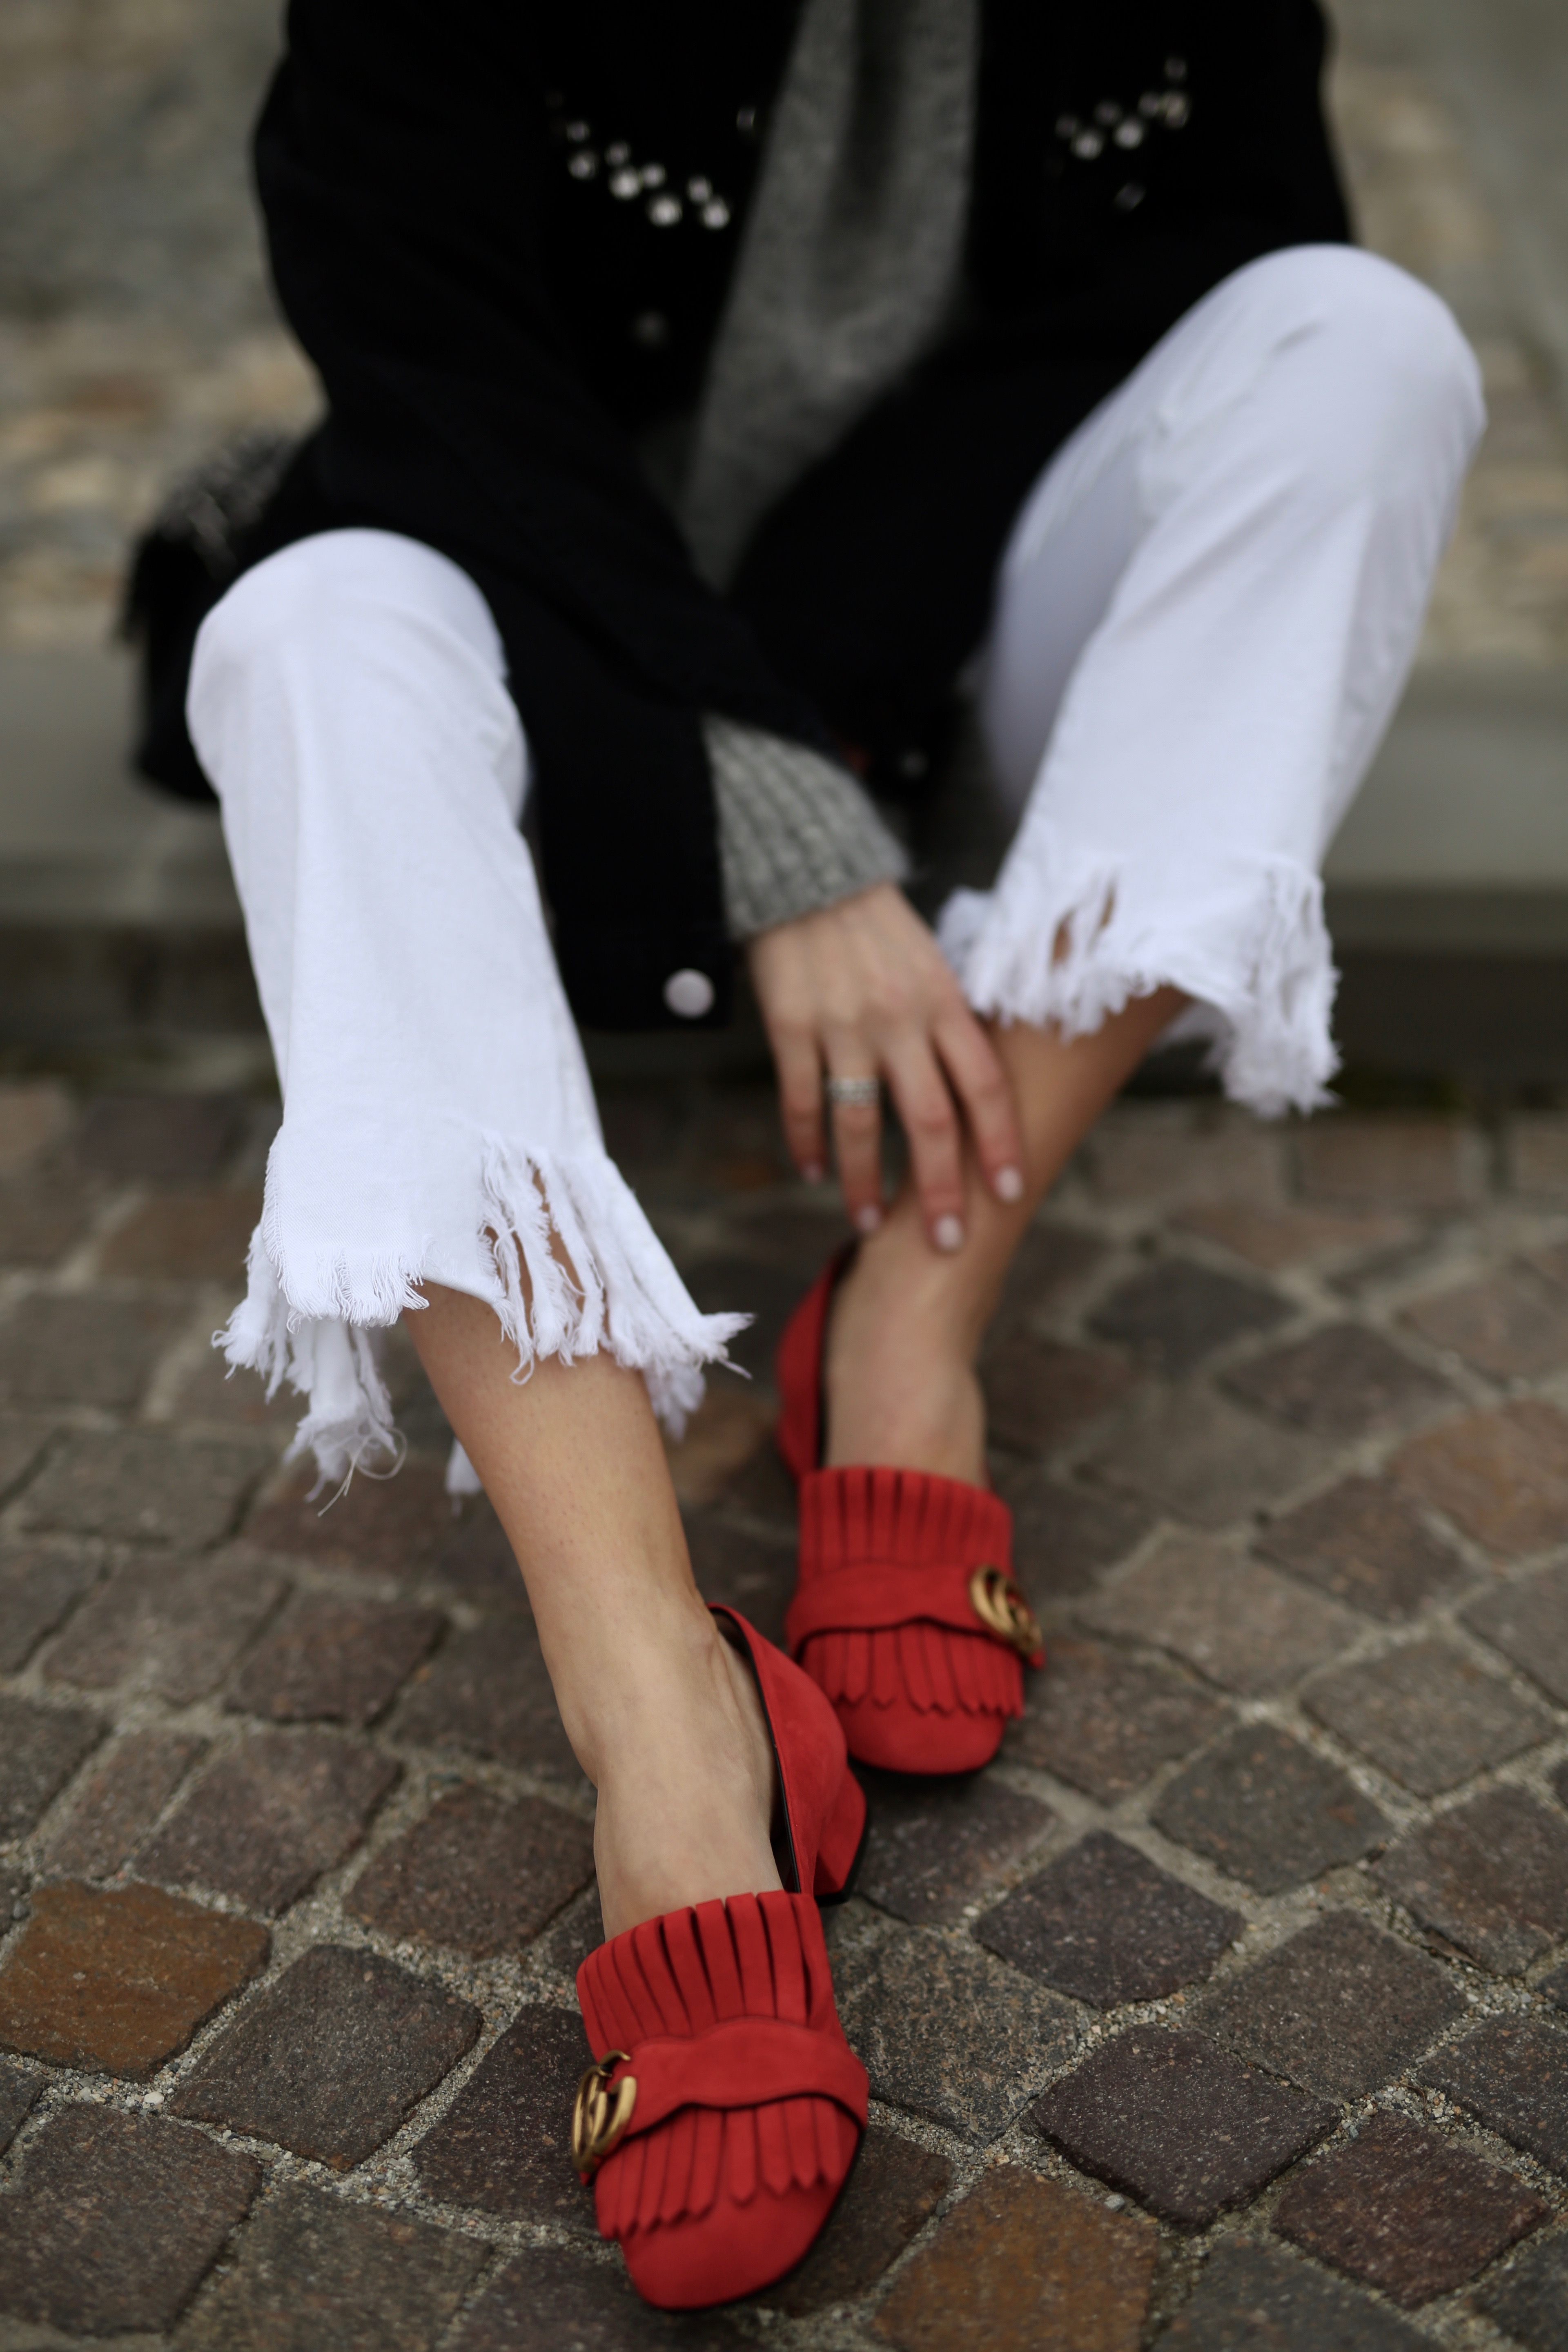 Gucci loafers white jeans details - Shoppisticated